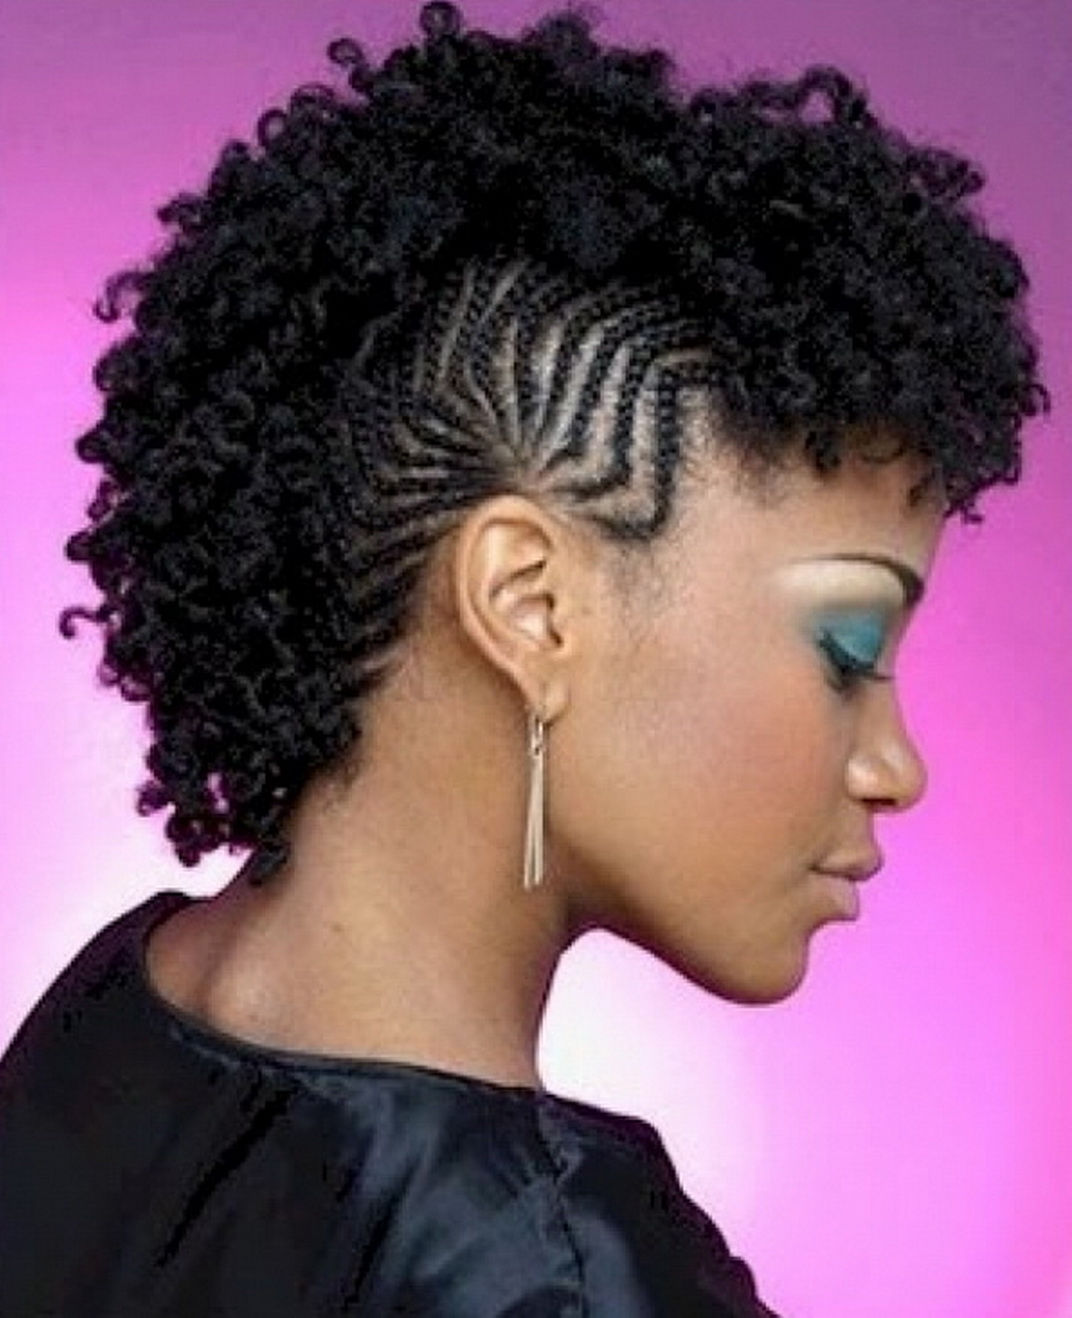 20 Nigerian Natural Hair Styles 2017 To Keep Your Hair Healthy Jiji Blog